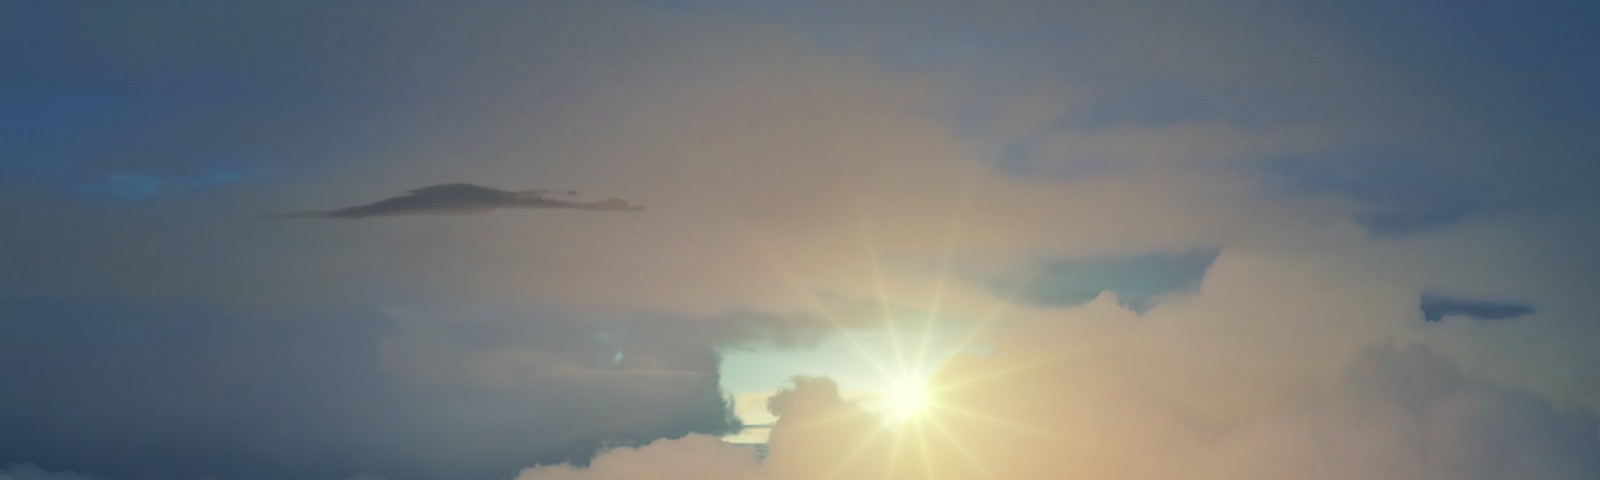 Photo of sun cutting though clouds and surreal window of blue sky.